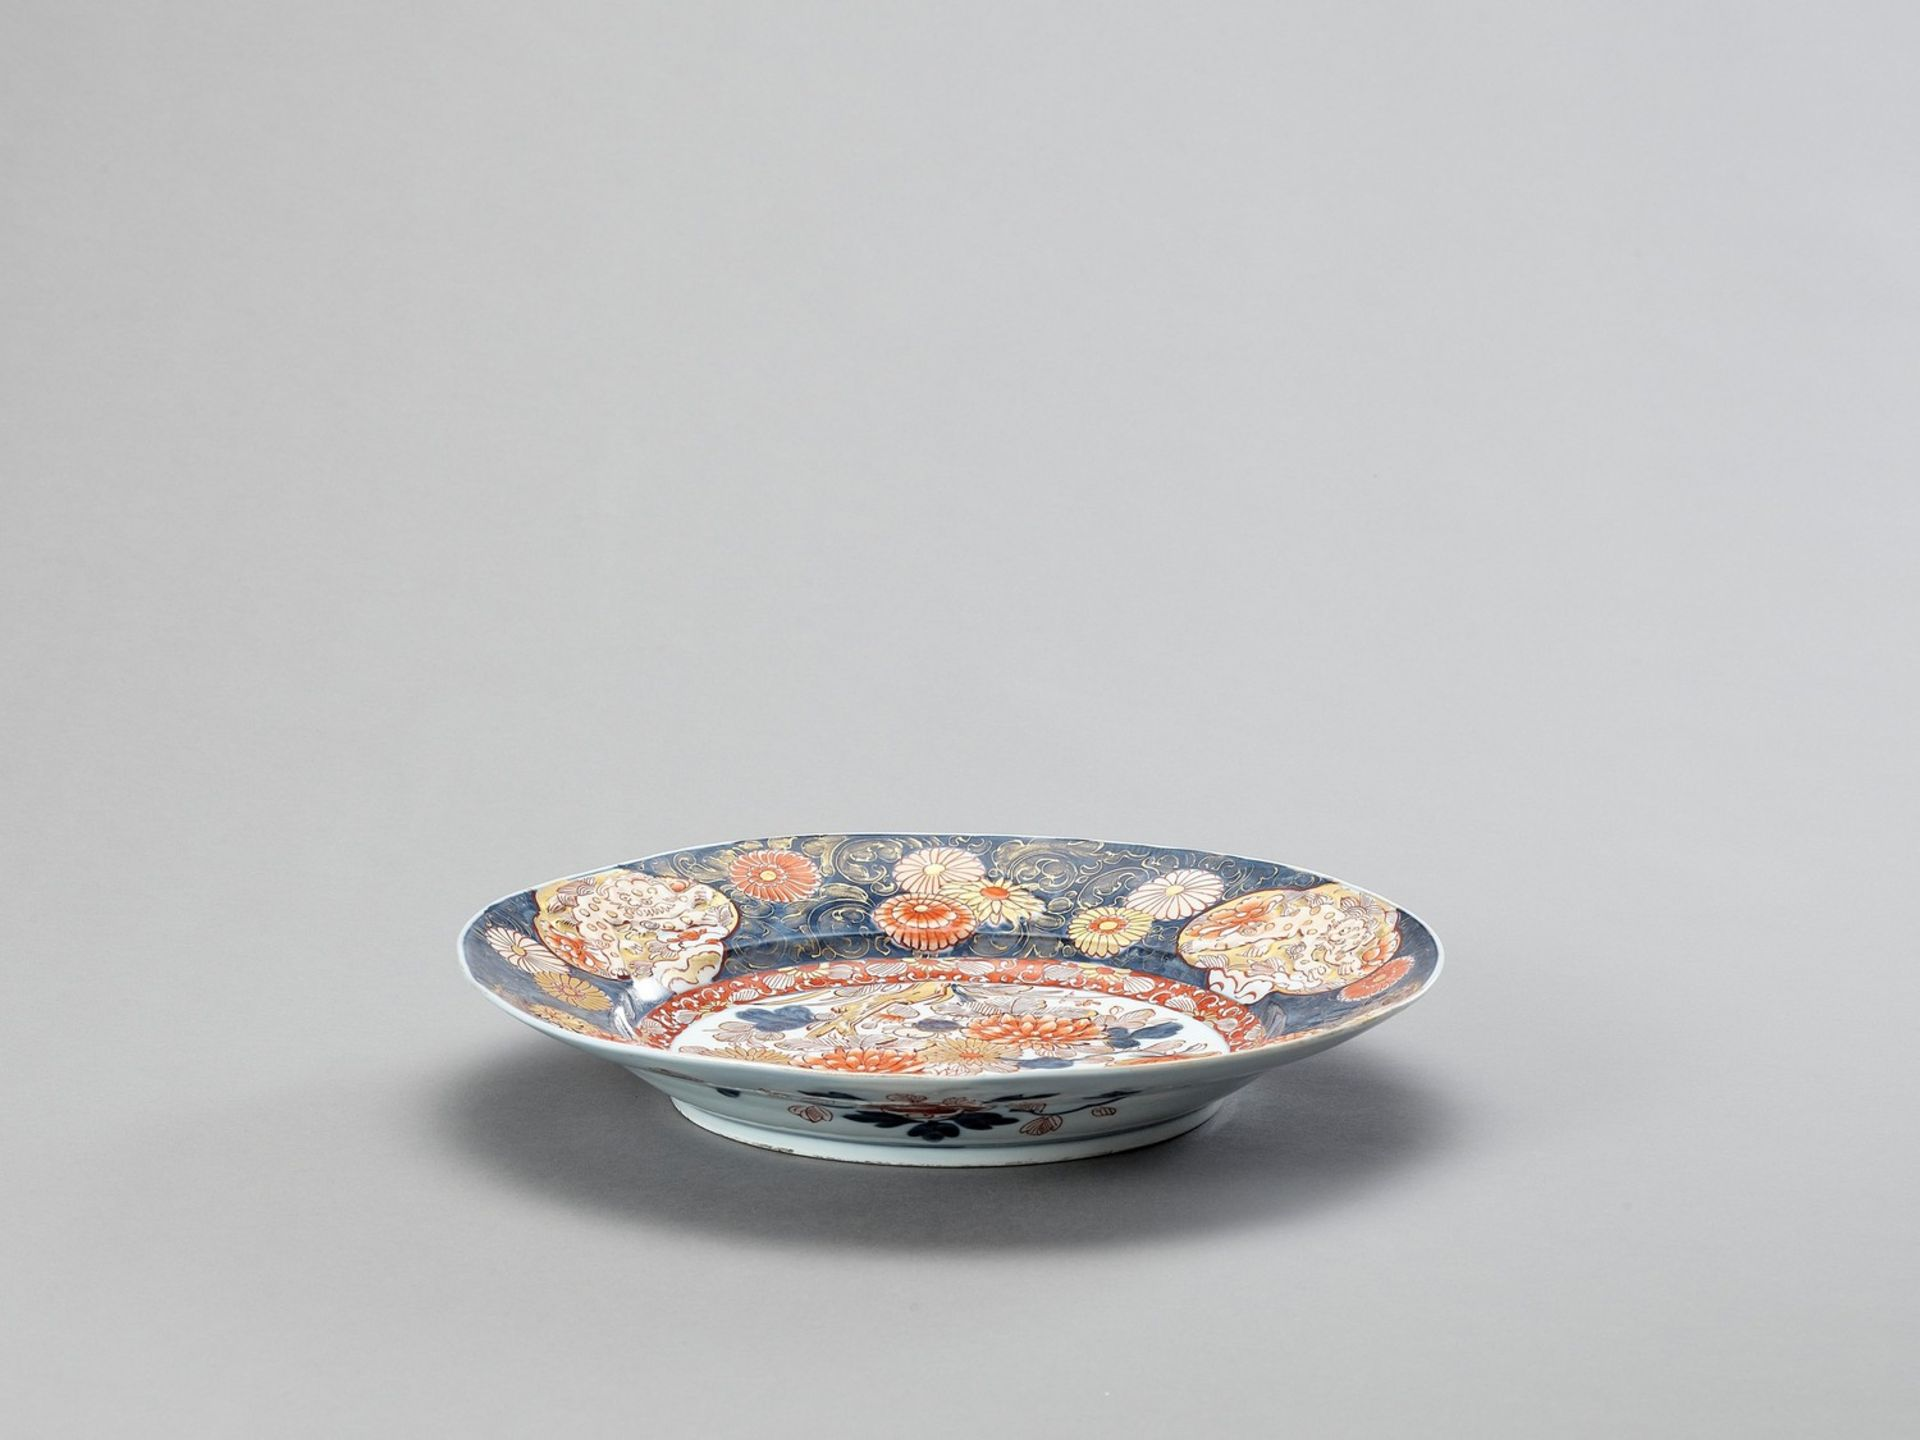 A LARGE IMARI PORCELAIN CHARGER - Image 2 of 4